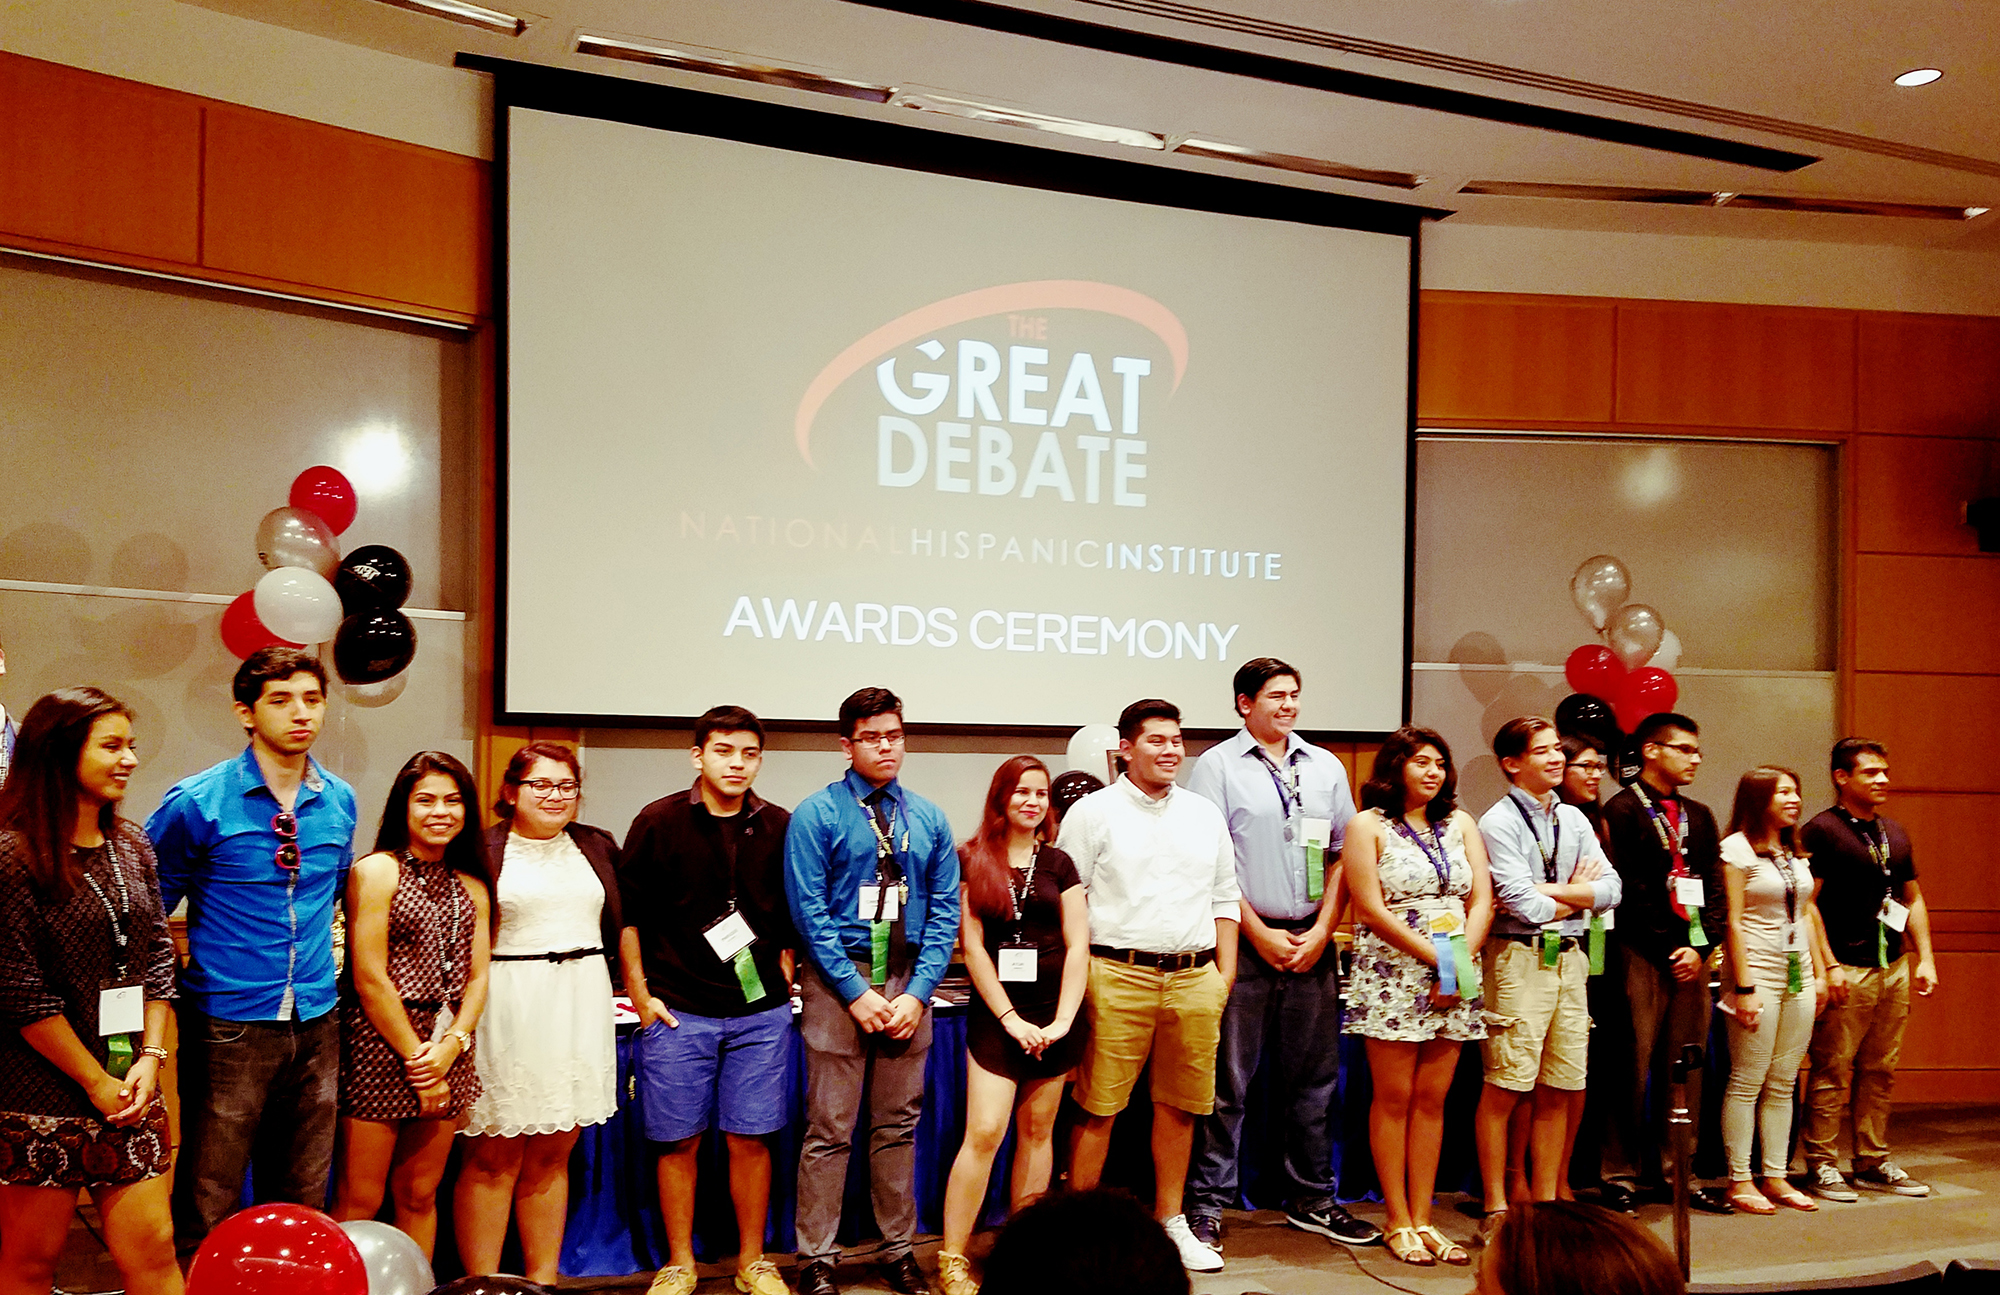 Midwest Great Debate winners